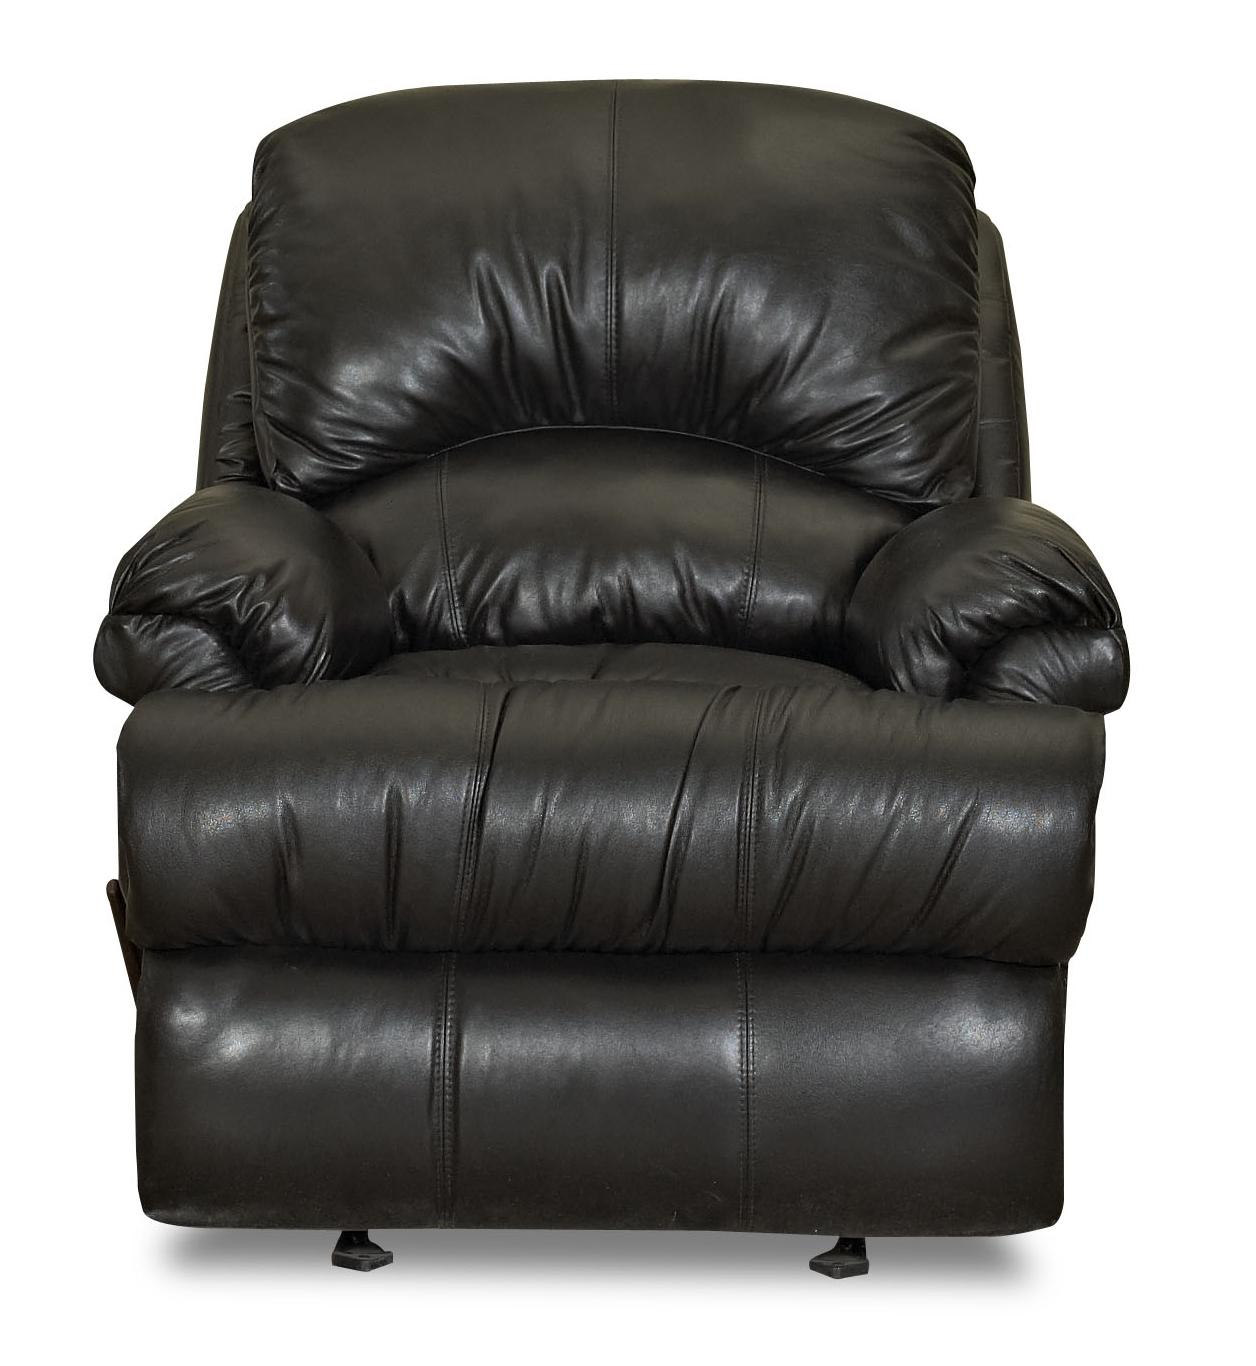 Klaussner Phoenix II Casual Reclining Rocking Chair - Item Number: L44803H RRC